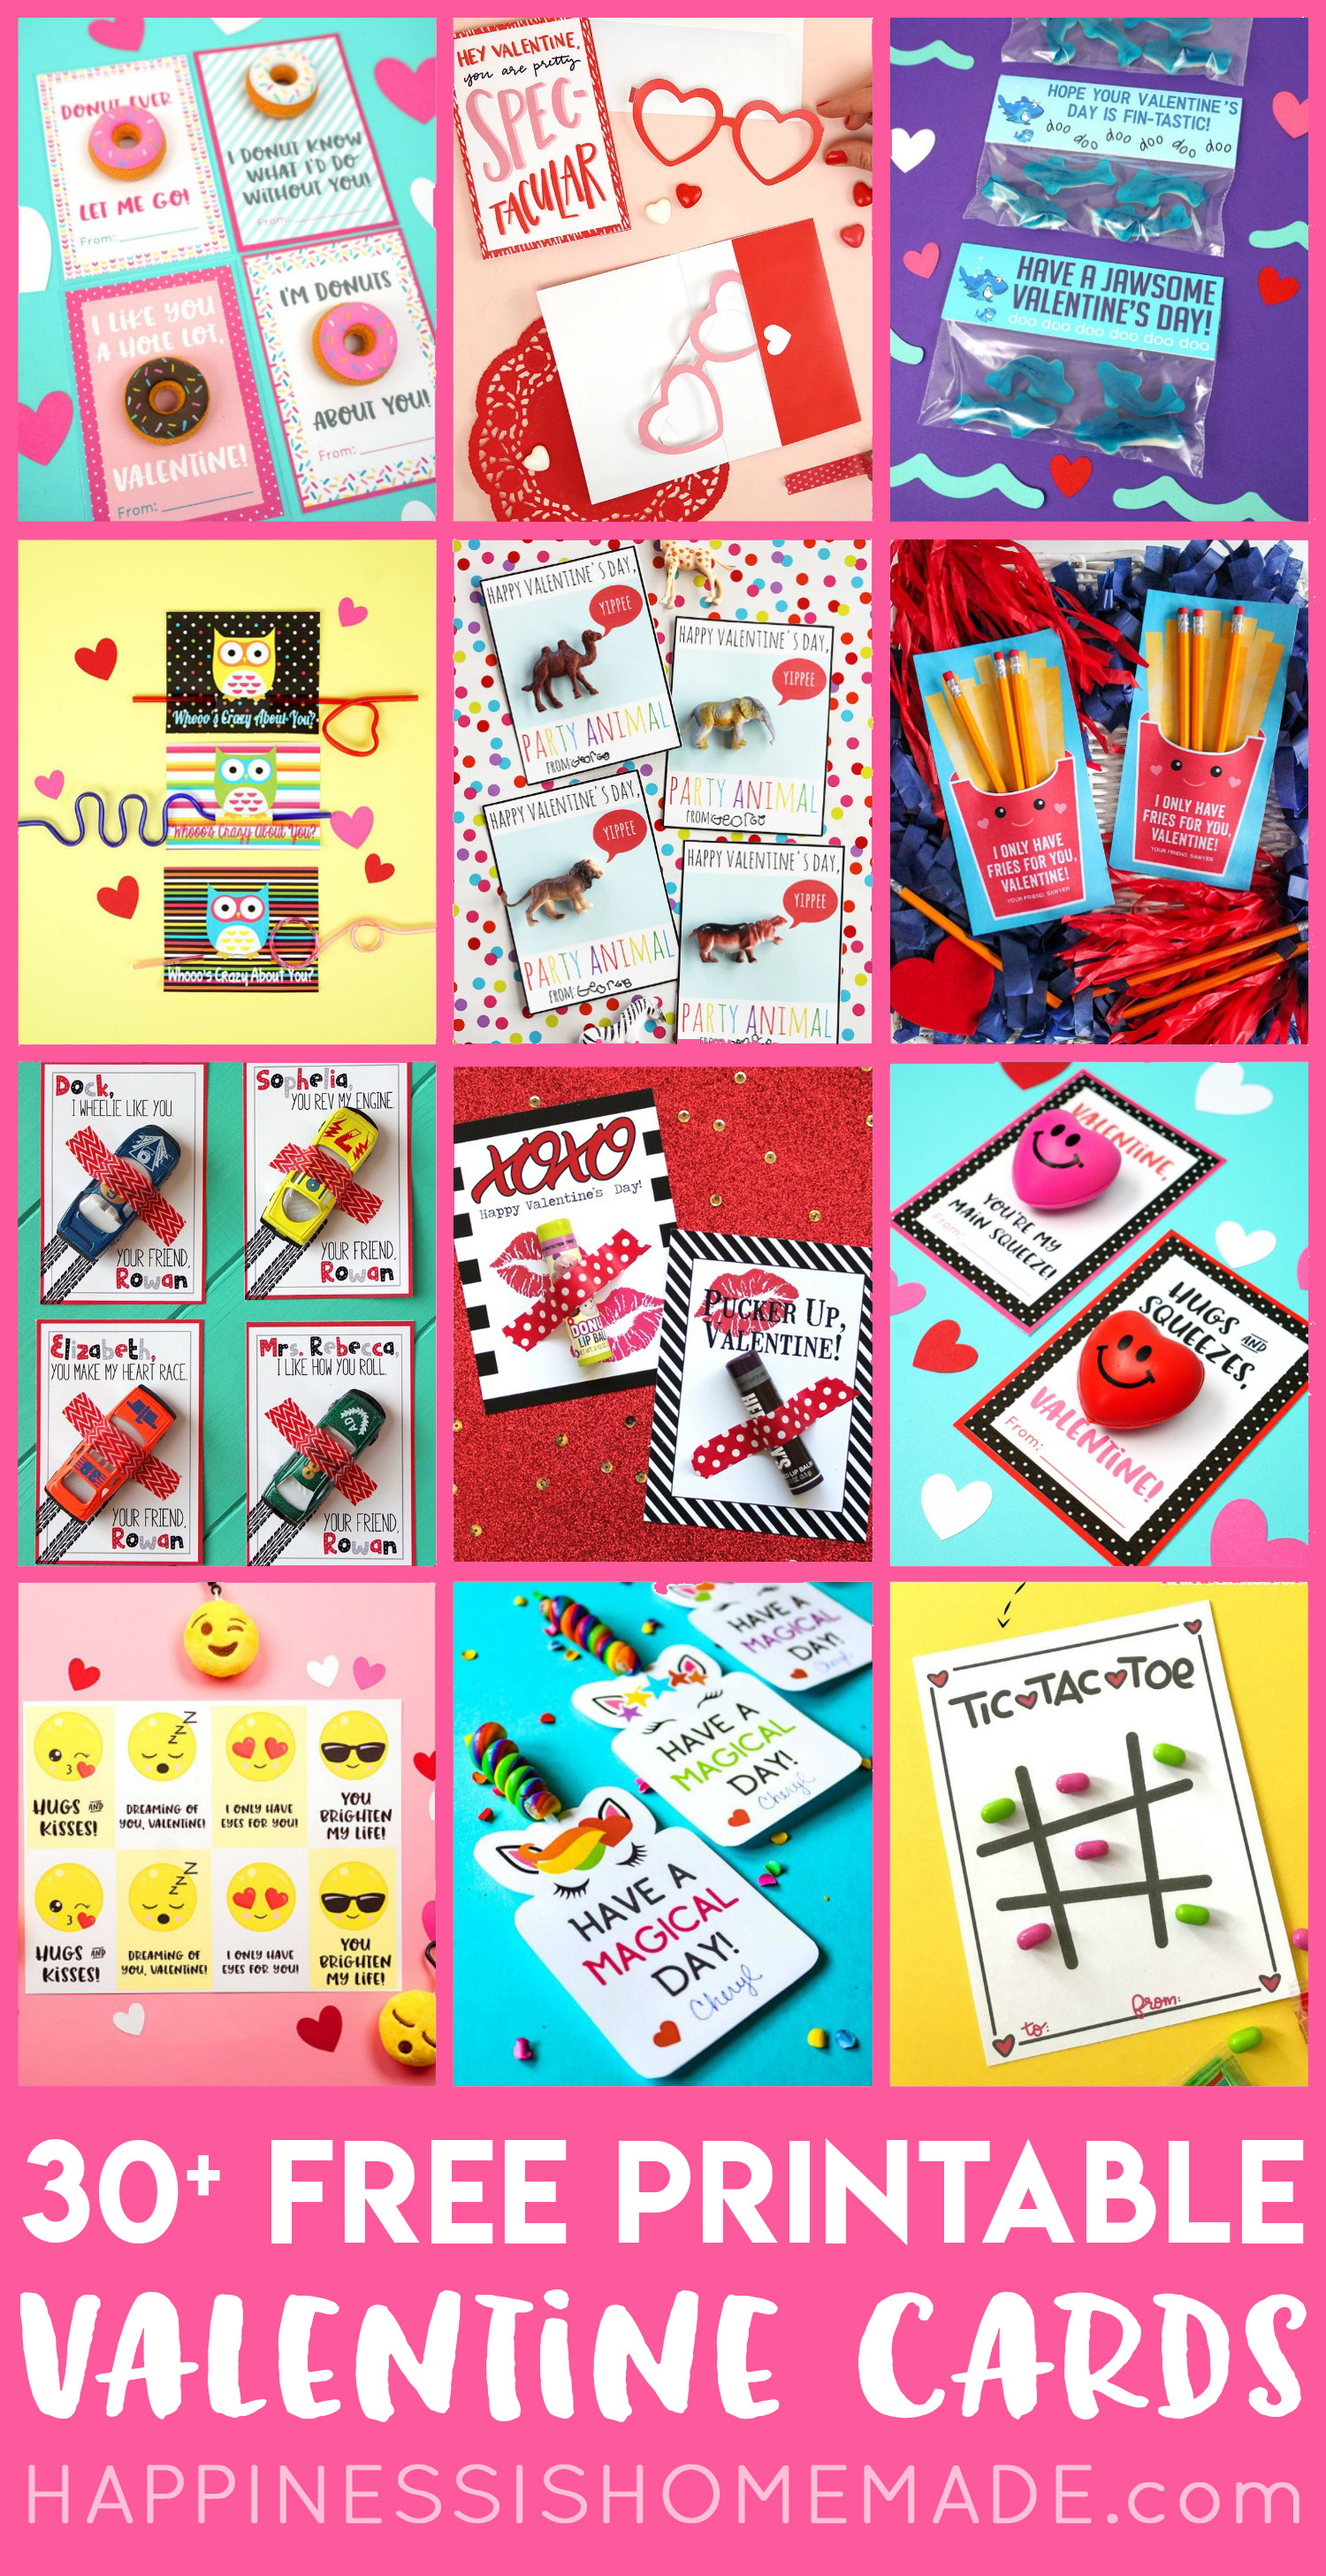 30+ Free Printable Valentine Cards - Happiness Is Homemade - Free Printable Images